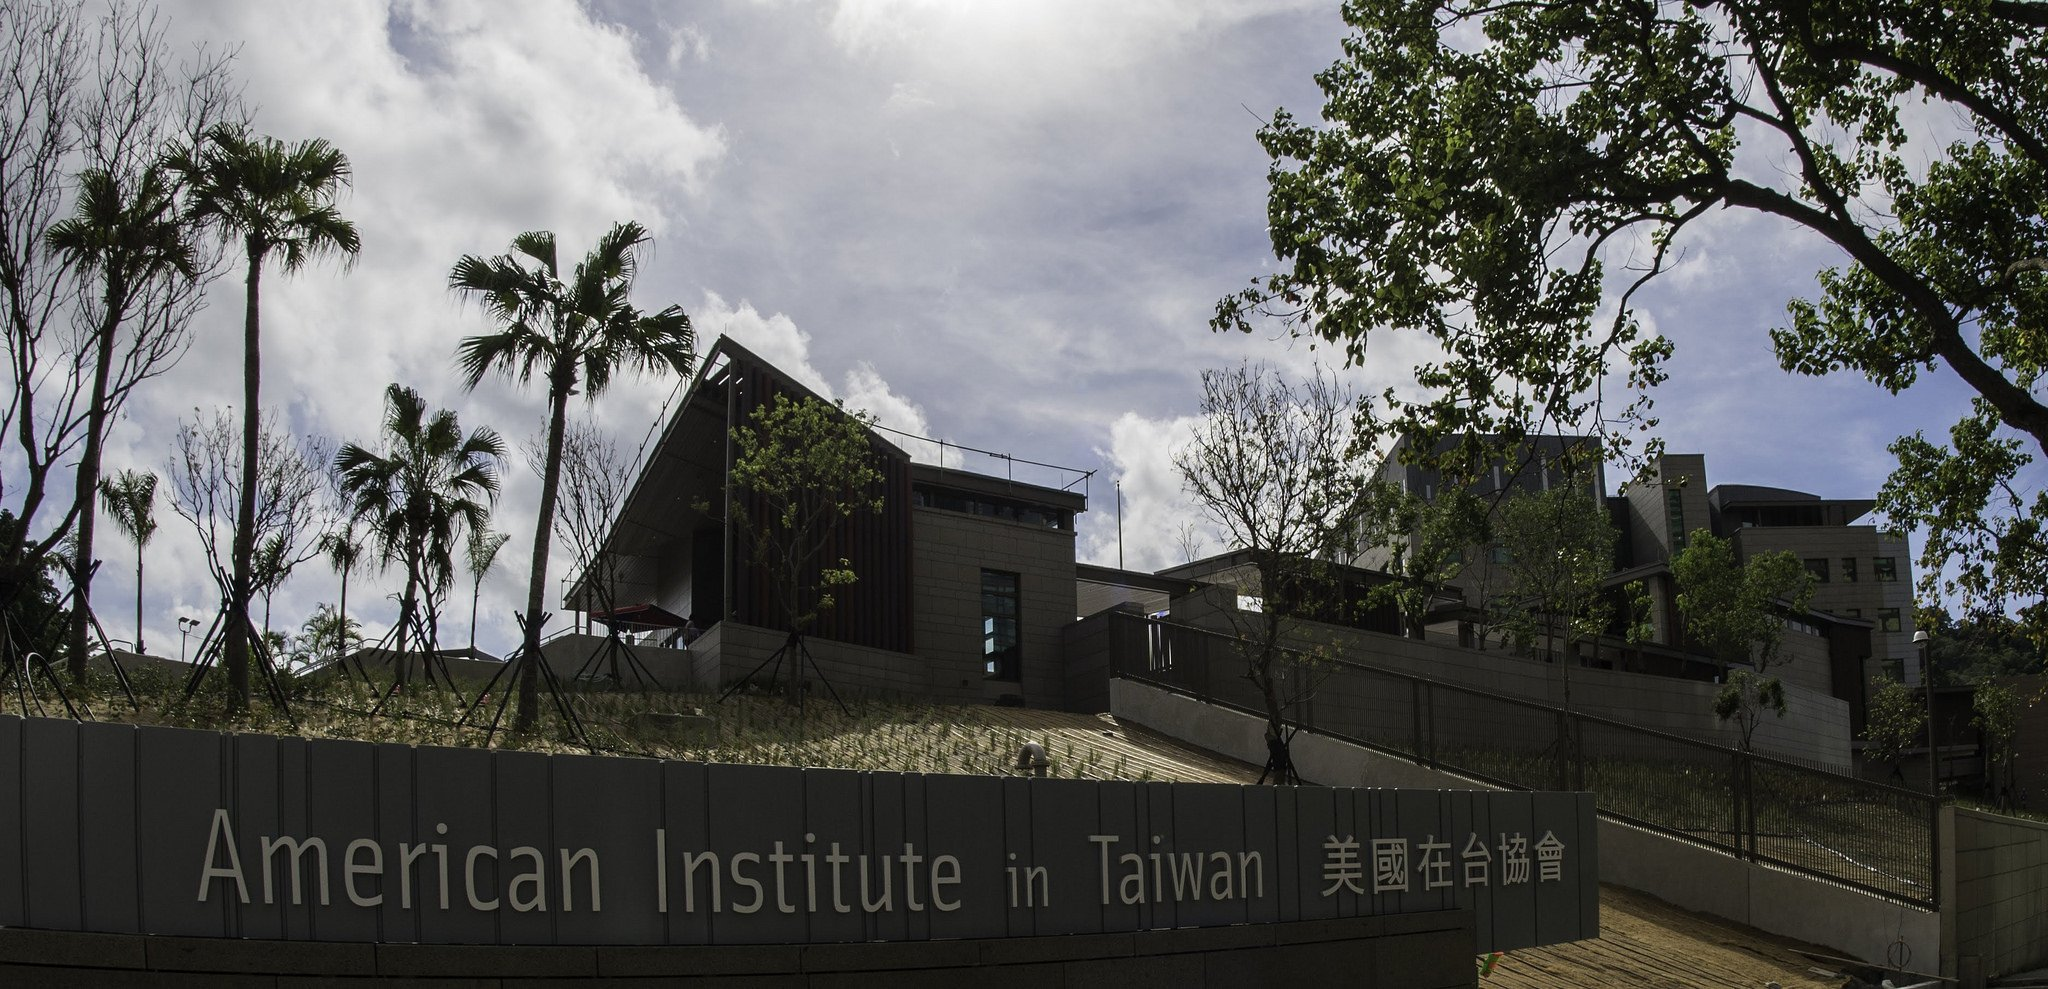 War and Architecture: Geopolitics and Modern Architecture in/around East Asia - Jianfei Zhu - ILS lecture at the Royal College of Art